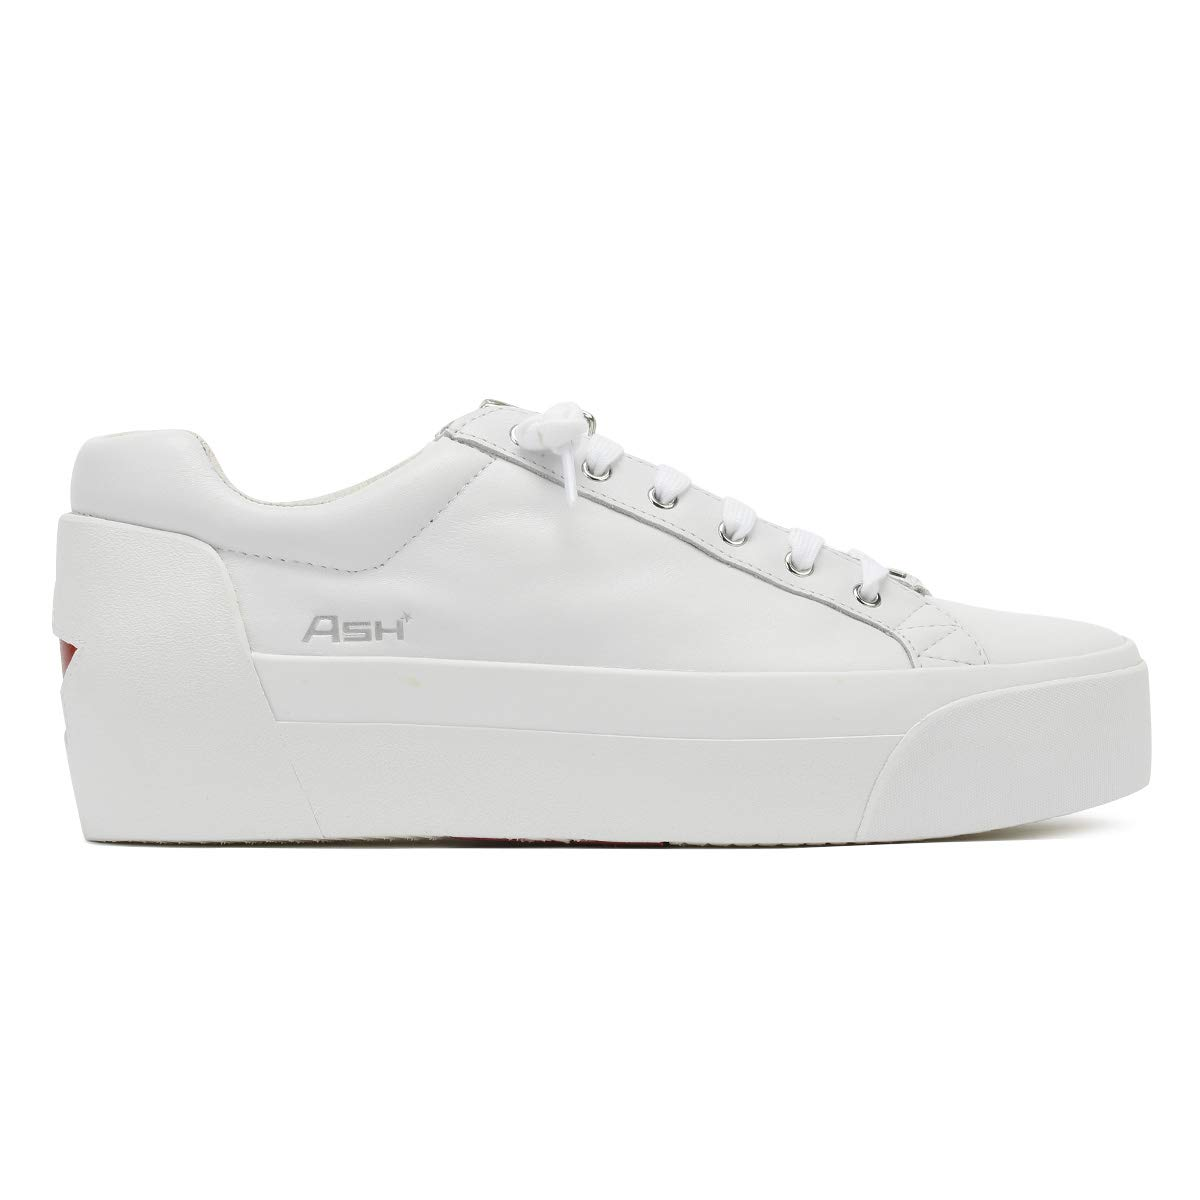 469ae30b402 Ash Womens White Red Buzz Platform Trainers  Amazon.co.uk  Shoes   Bags